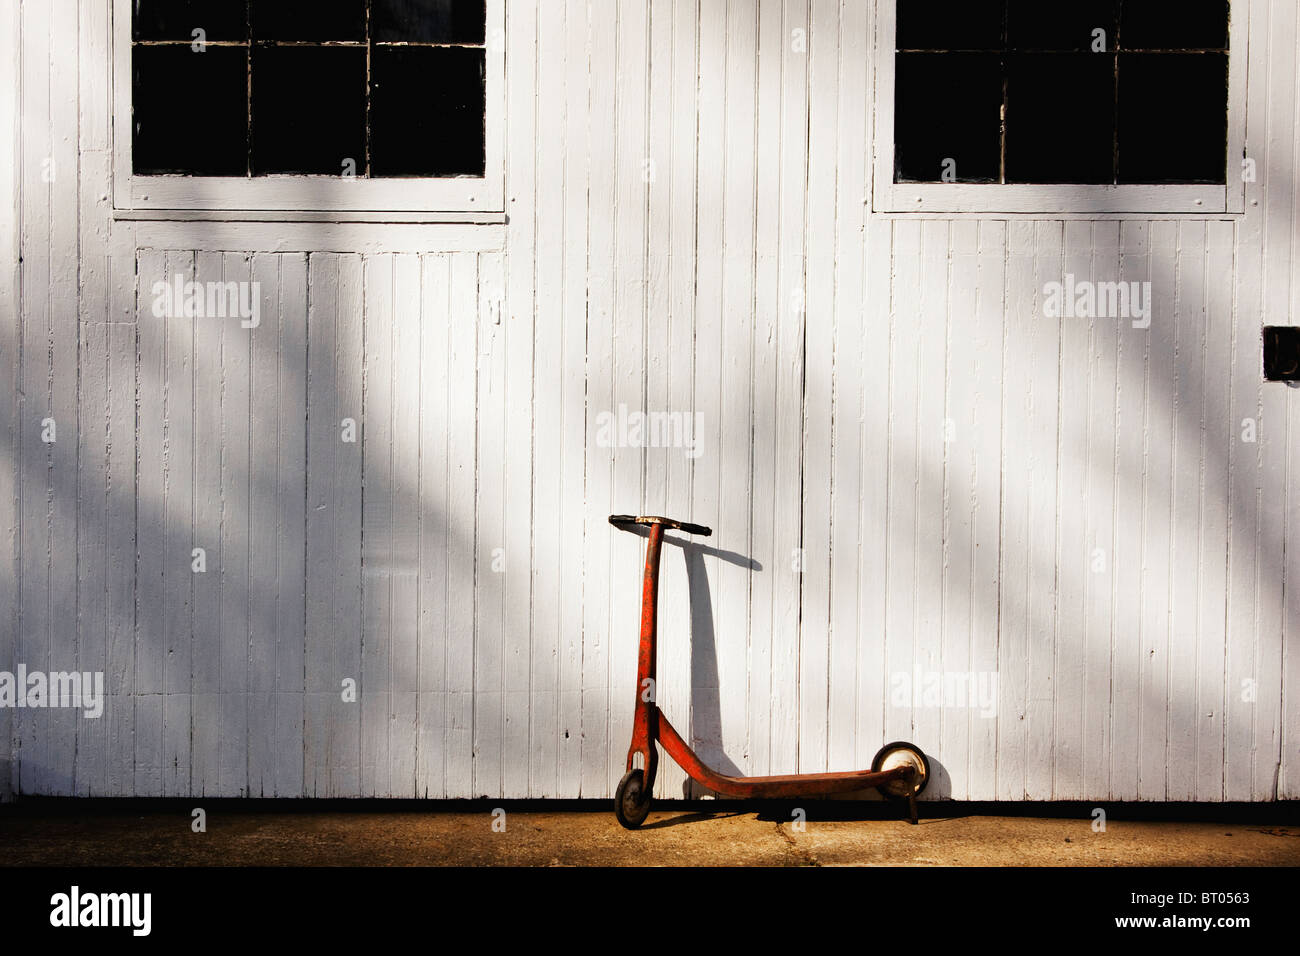 Red vintage metal scooter parked in front of while barn door - Stock Image